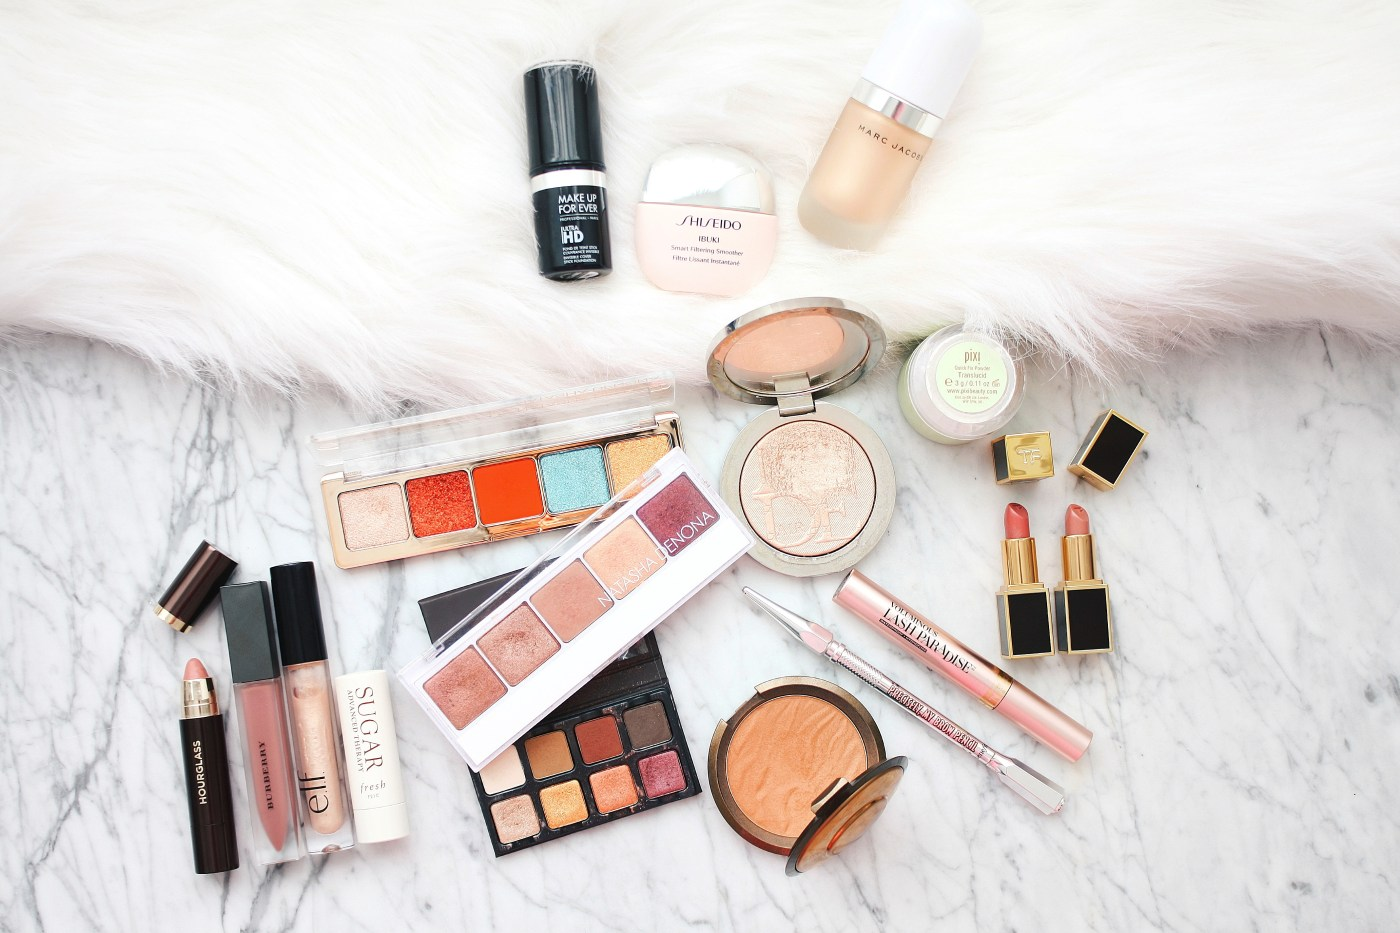 MY 2017 BEAUTY FAVOURITES